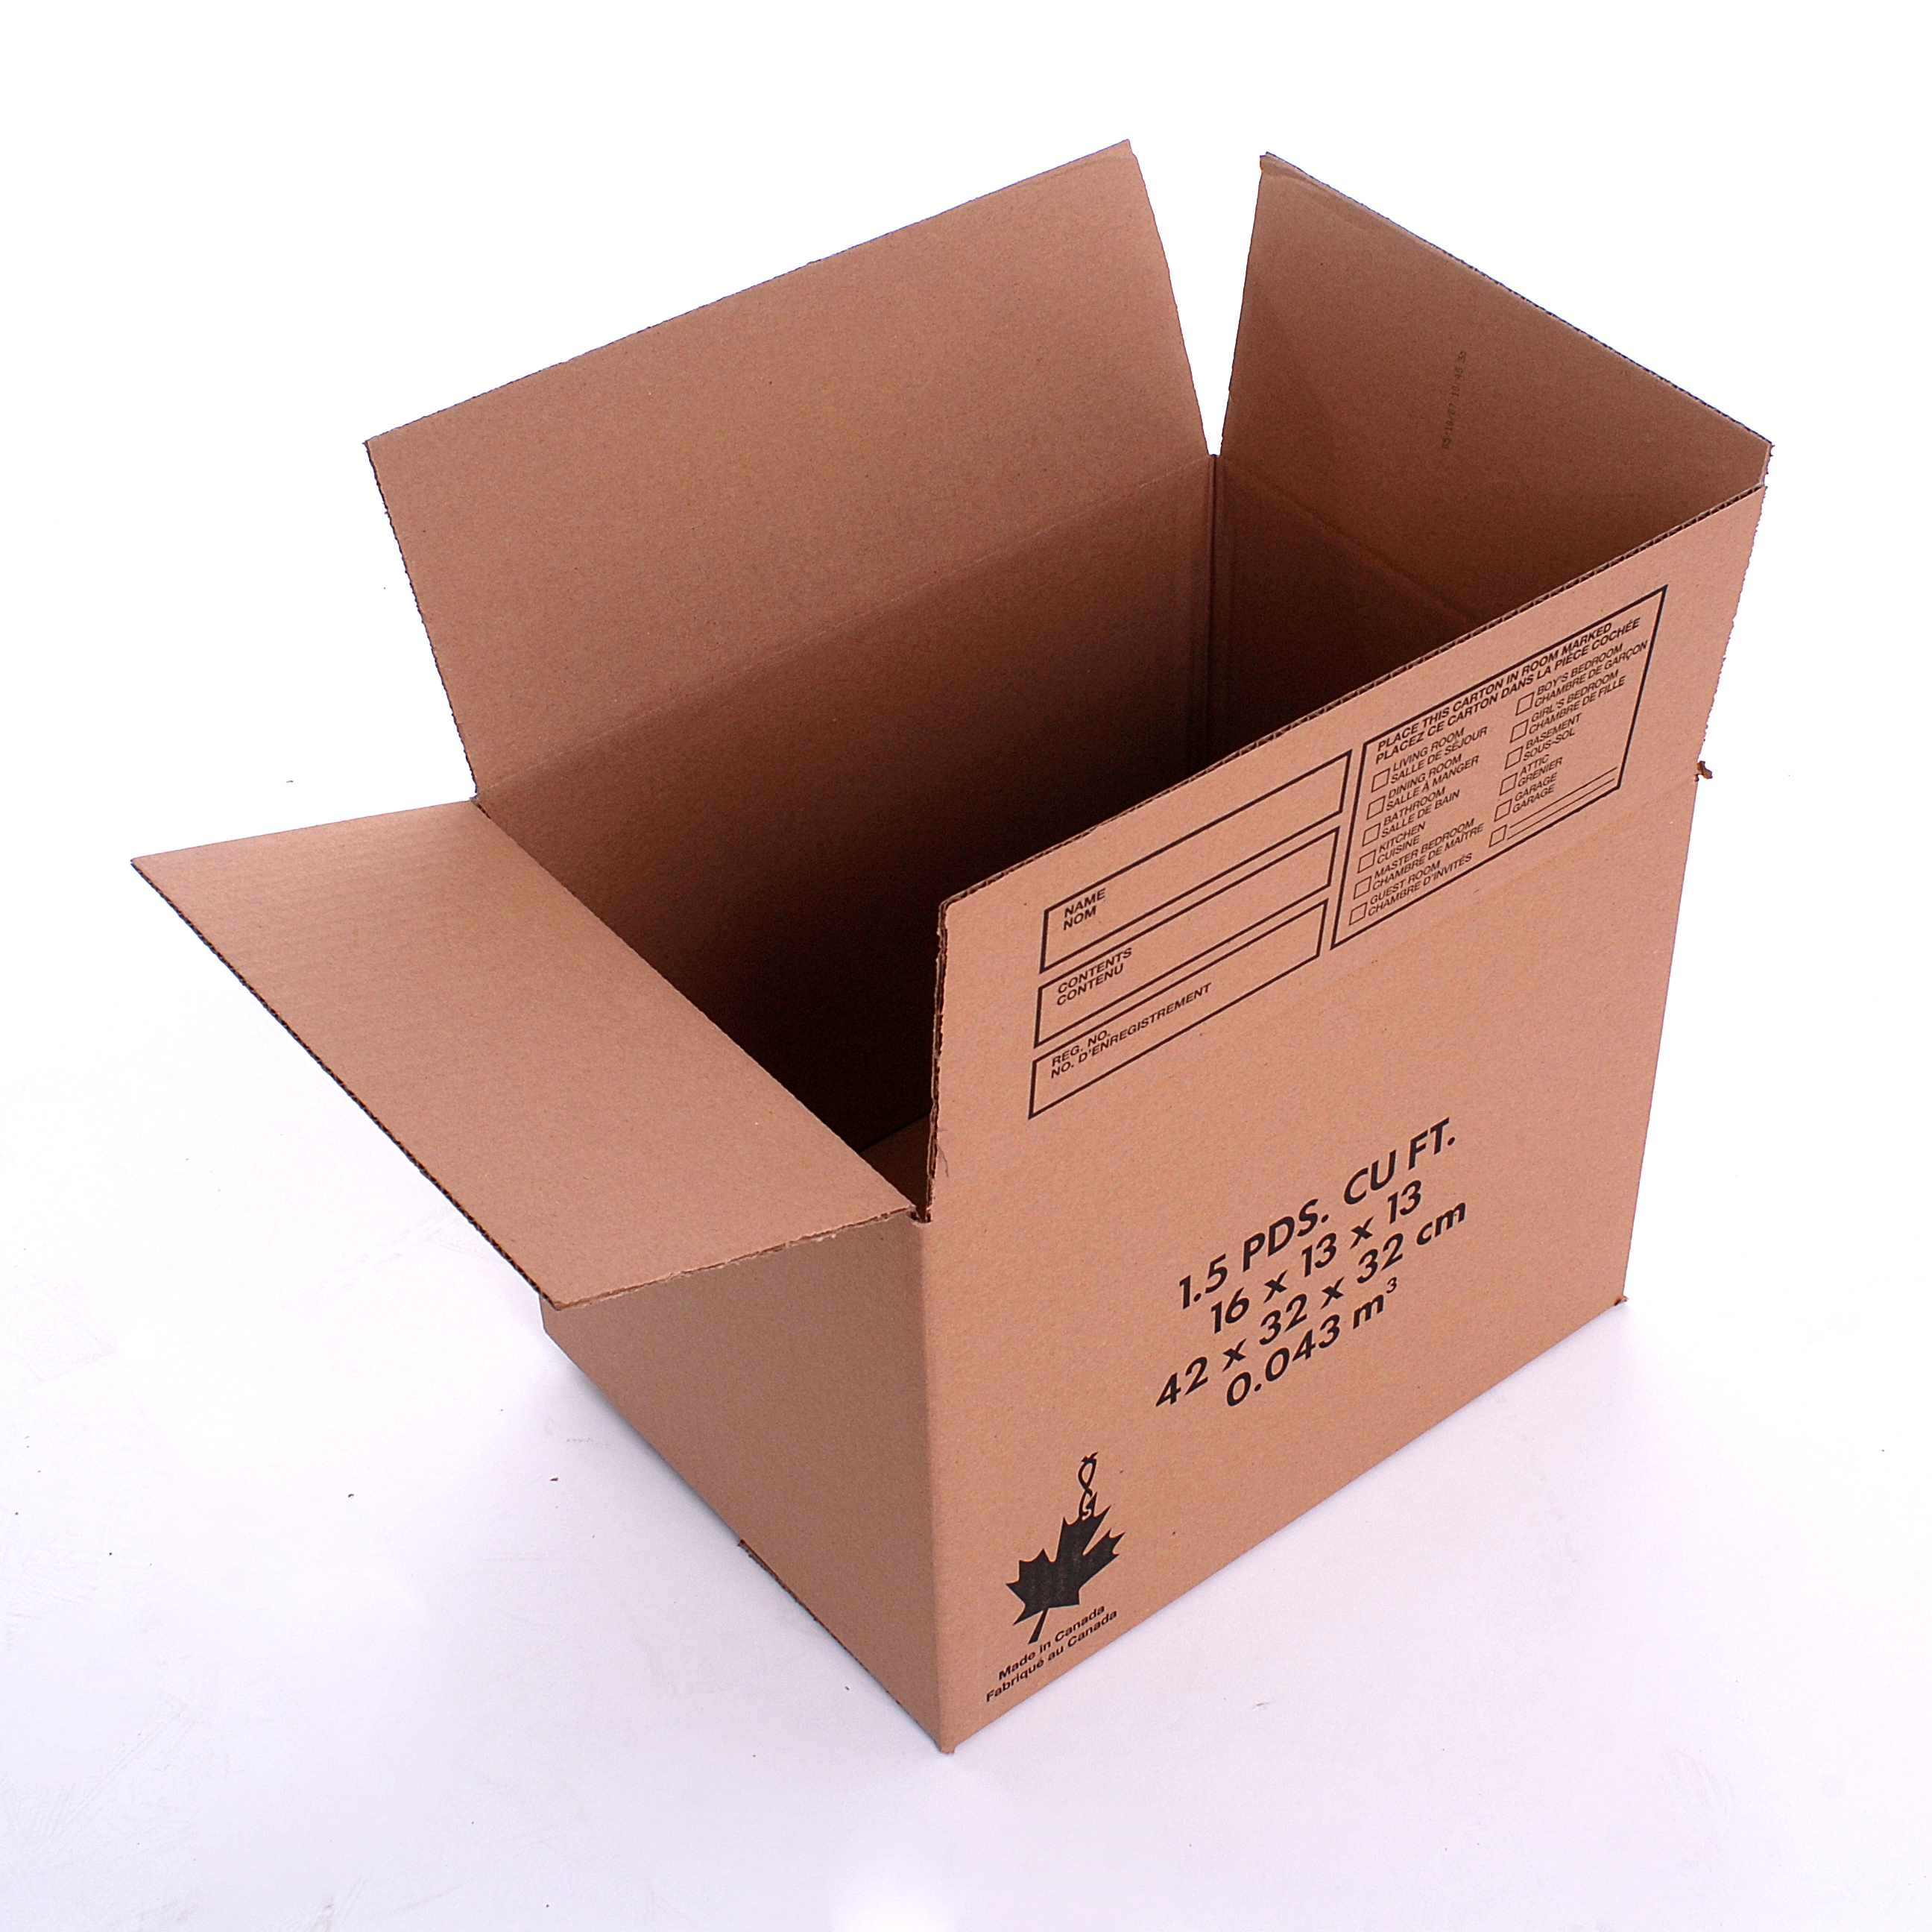 1 Cubic Foot Box